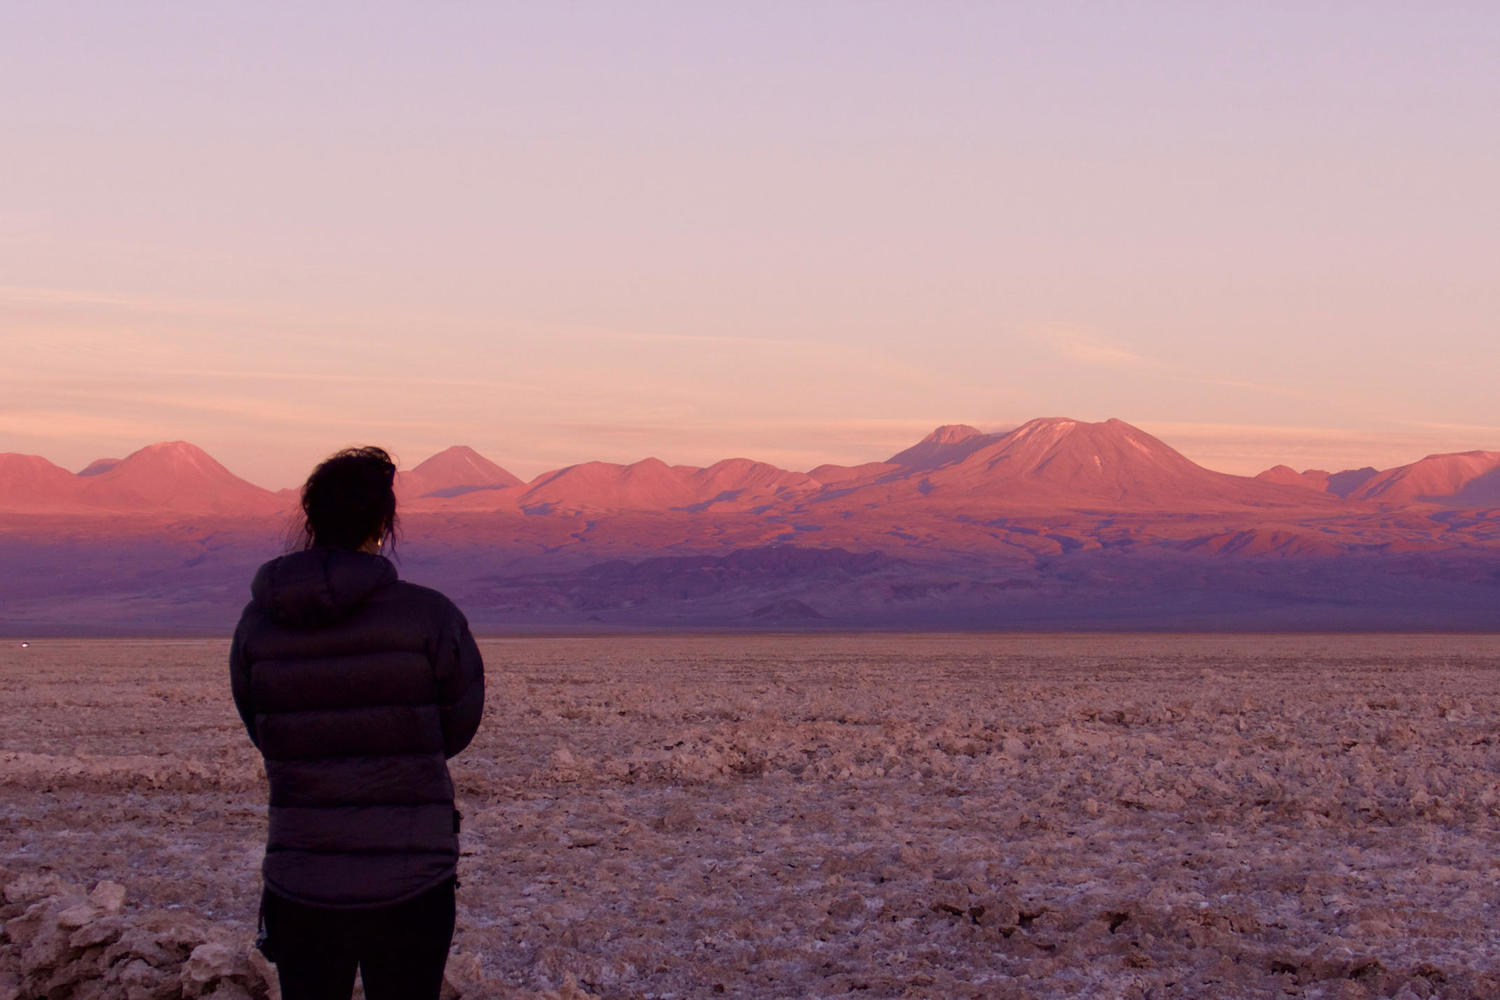 Sunset from the Valle de la Luna in the Atacama